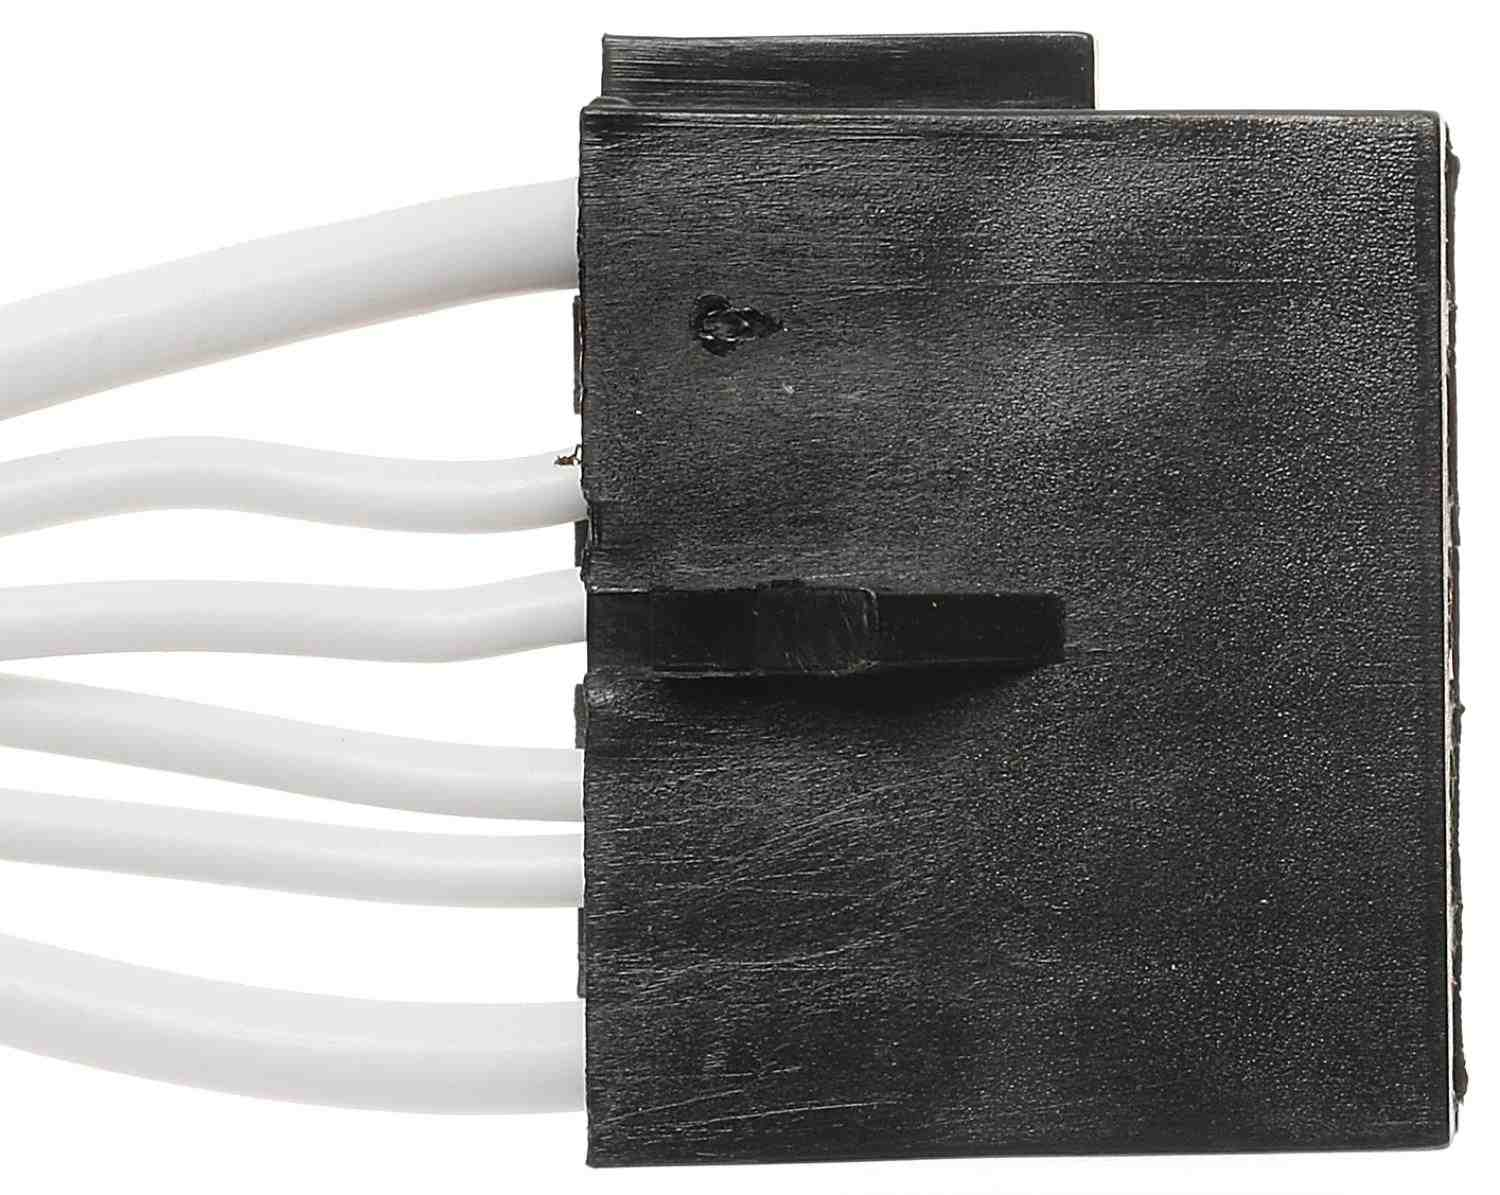 ACDELCO PROFESSIONAL - Multi Purpose Relay Connector - DCC PT2318